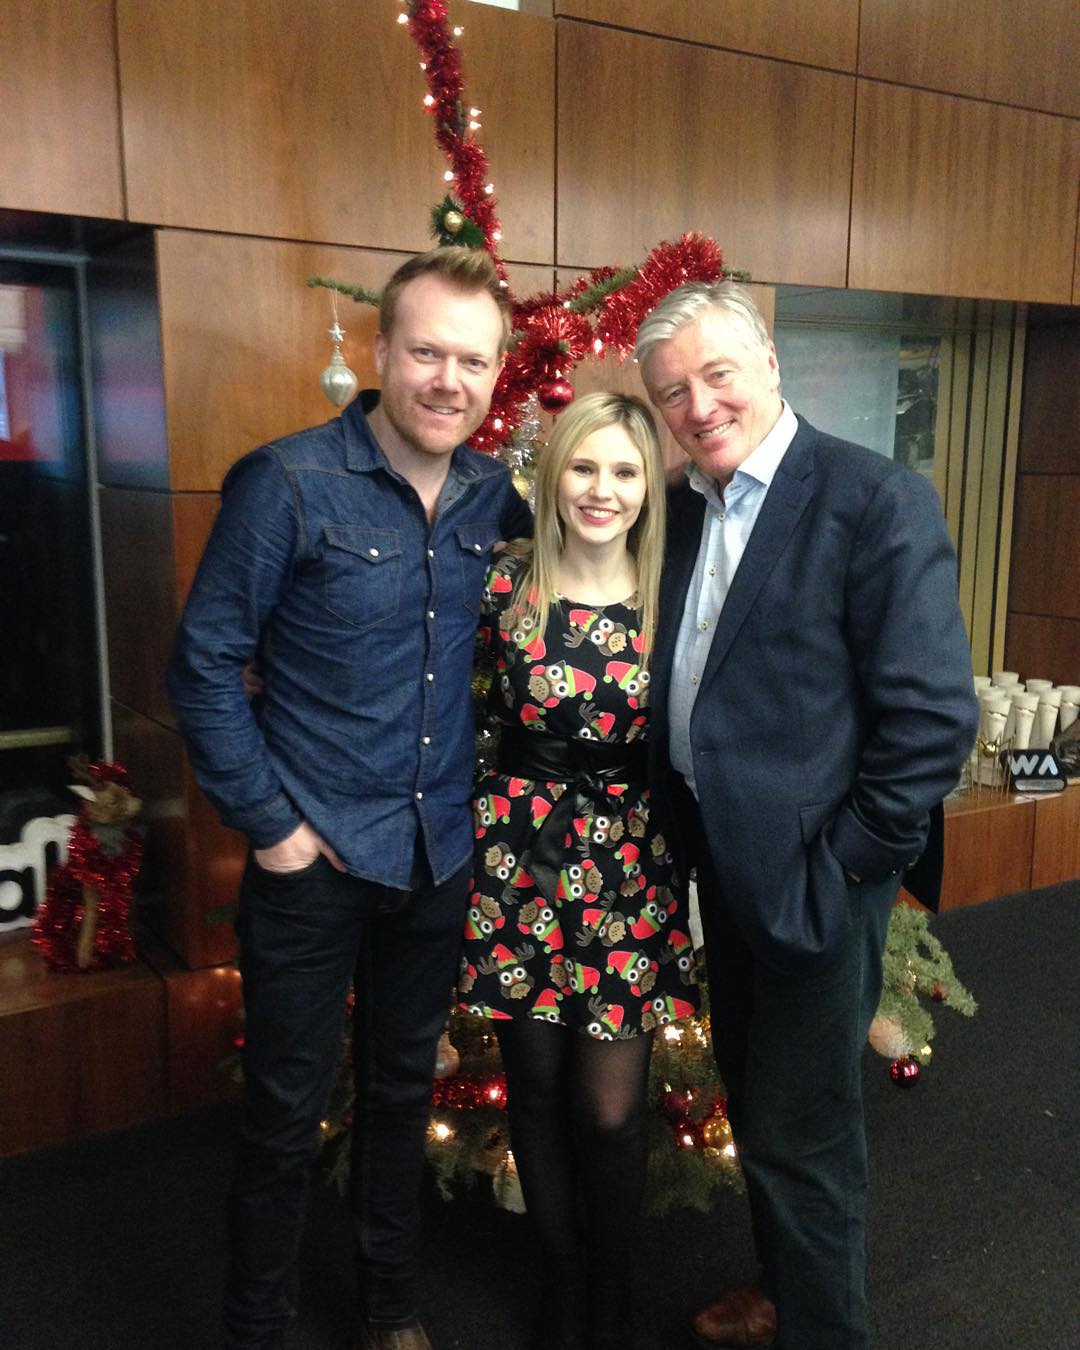 Performing on Newstalk with our great friend Pat kenny